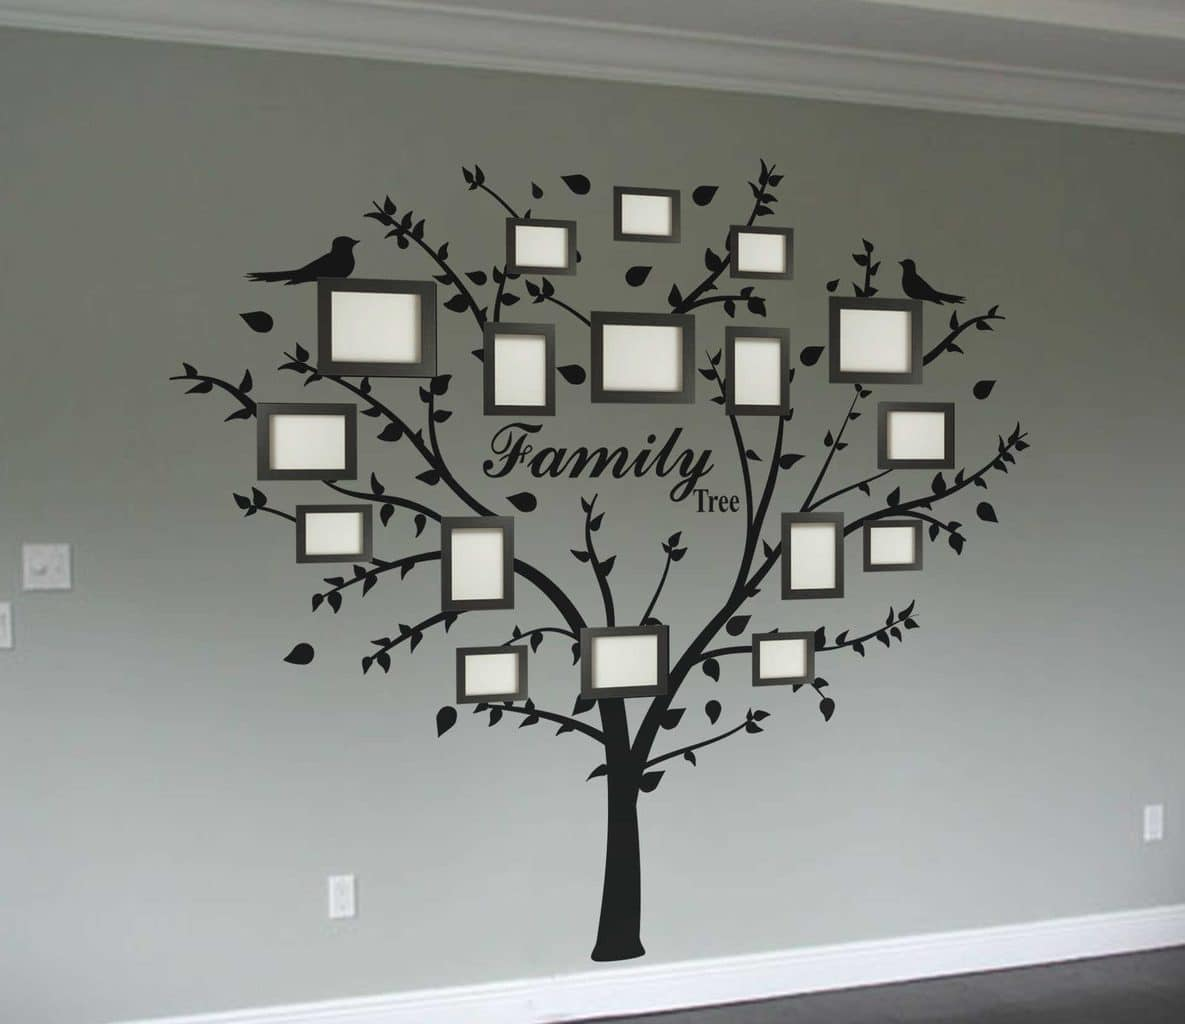 Family photo tree wall decal wall art decal sticker family photo tree wall decal wall decal sticker tree wall decals amipublicfo Choice Image